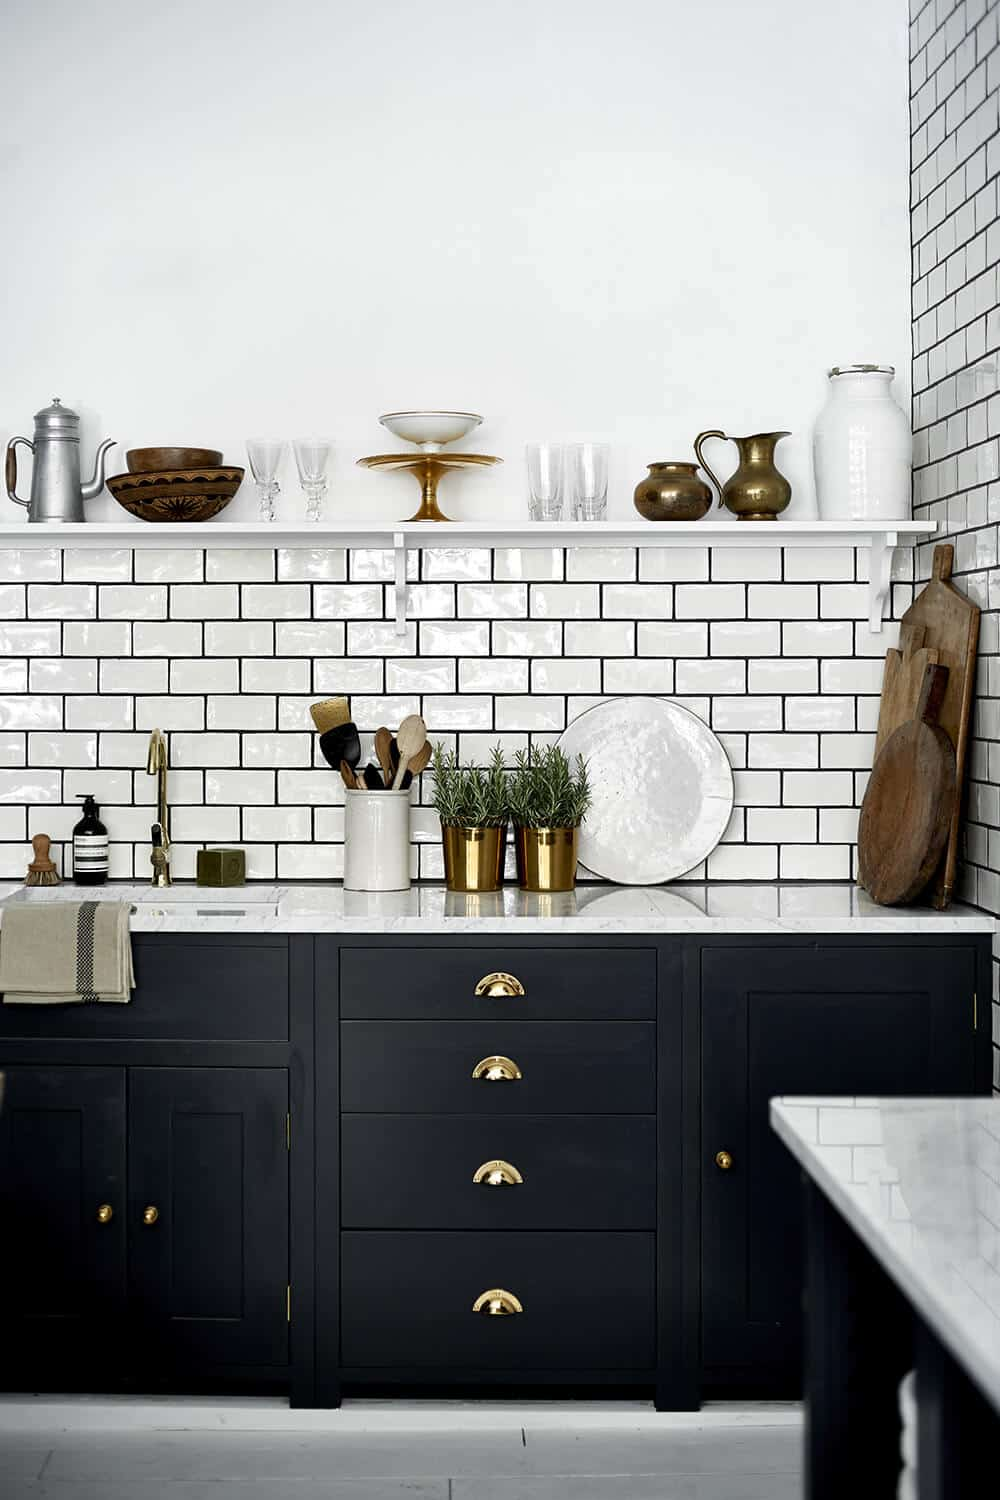 - The Difference Grout Color Can Make To Your Tiles - Emily Henderson